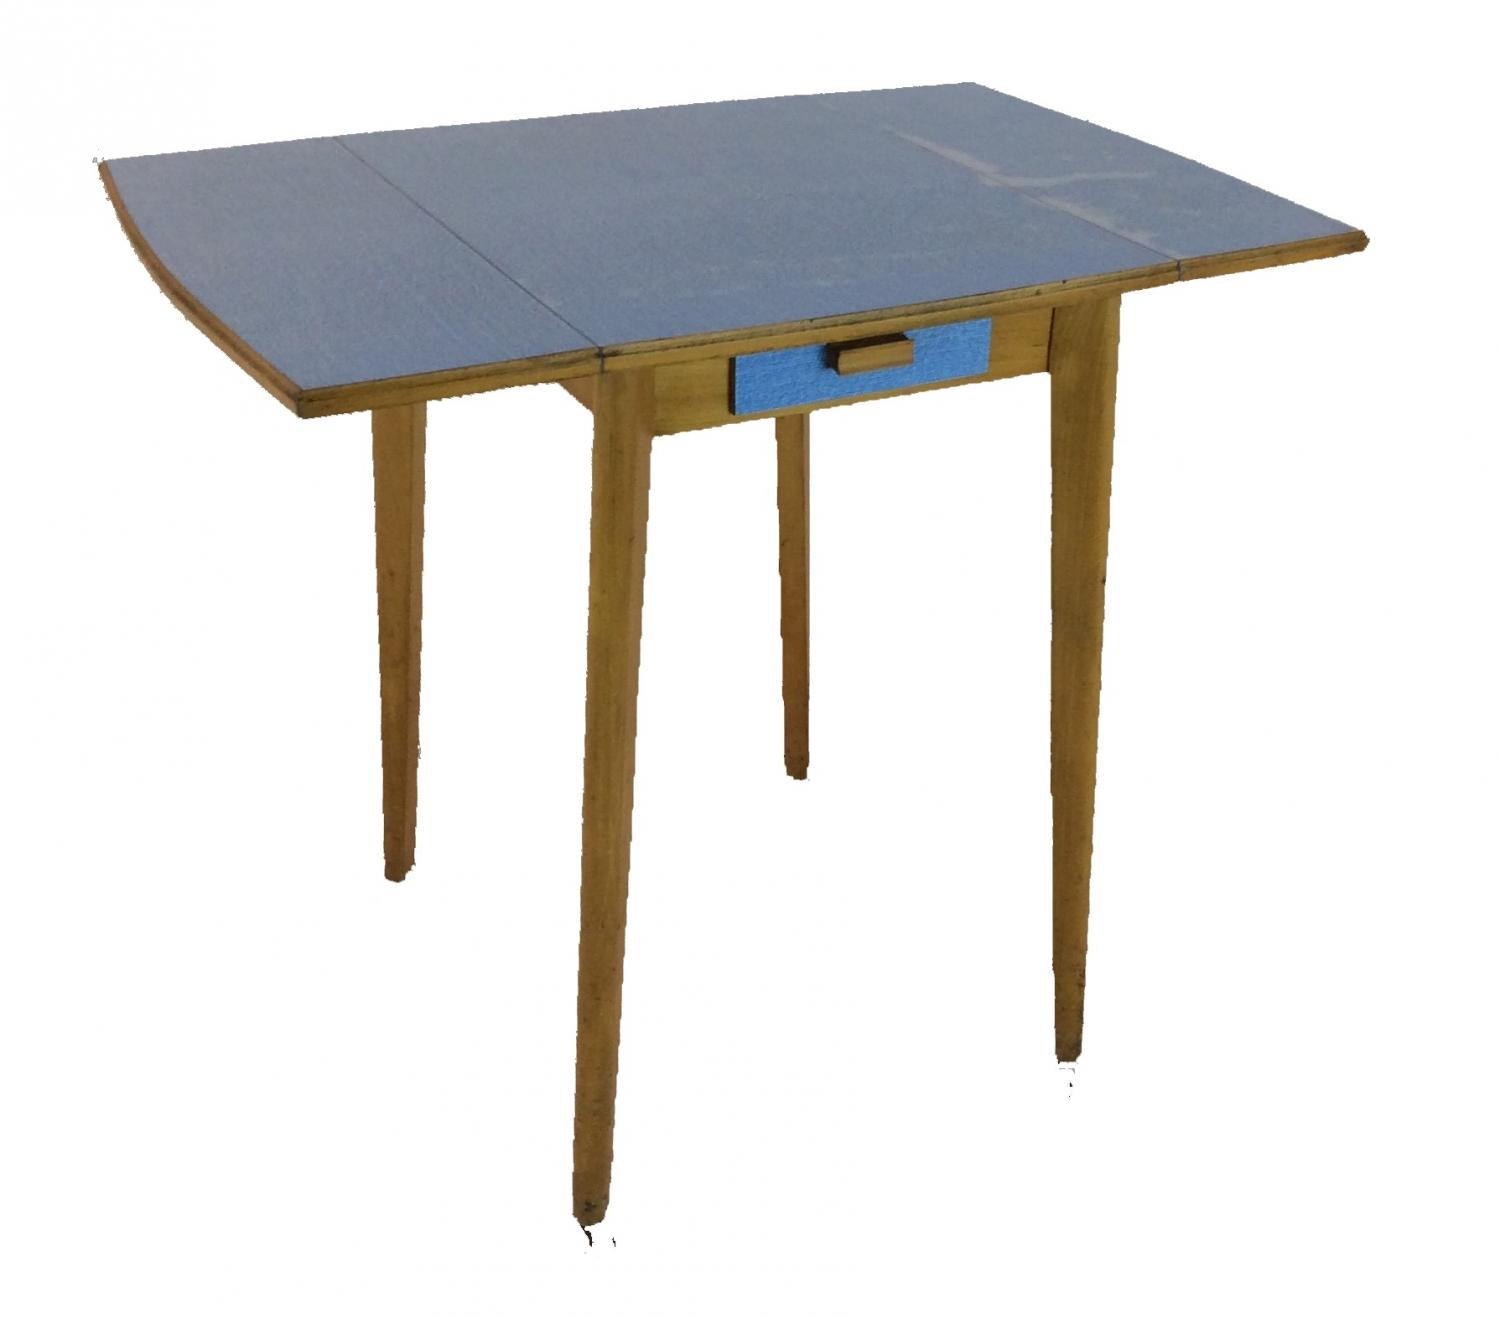 Retro bright blue formica table in sold recently for Formica table